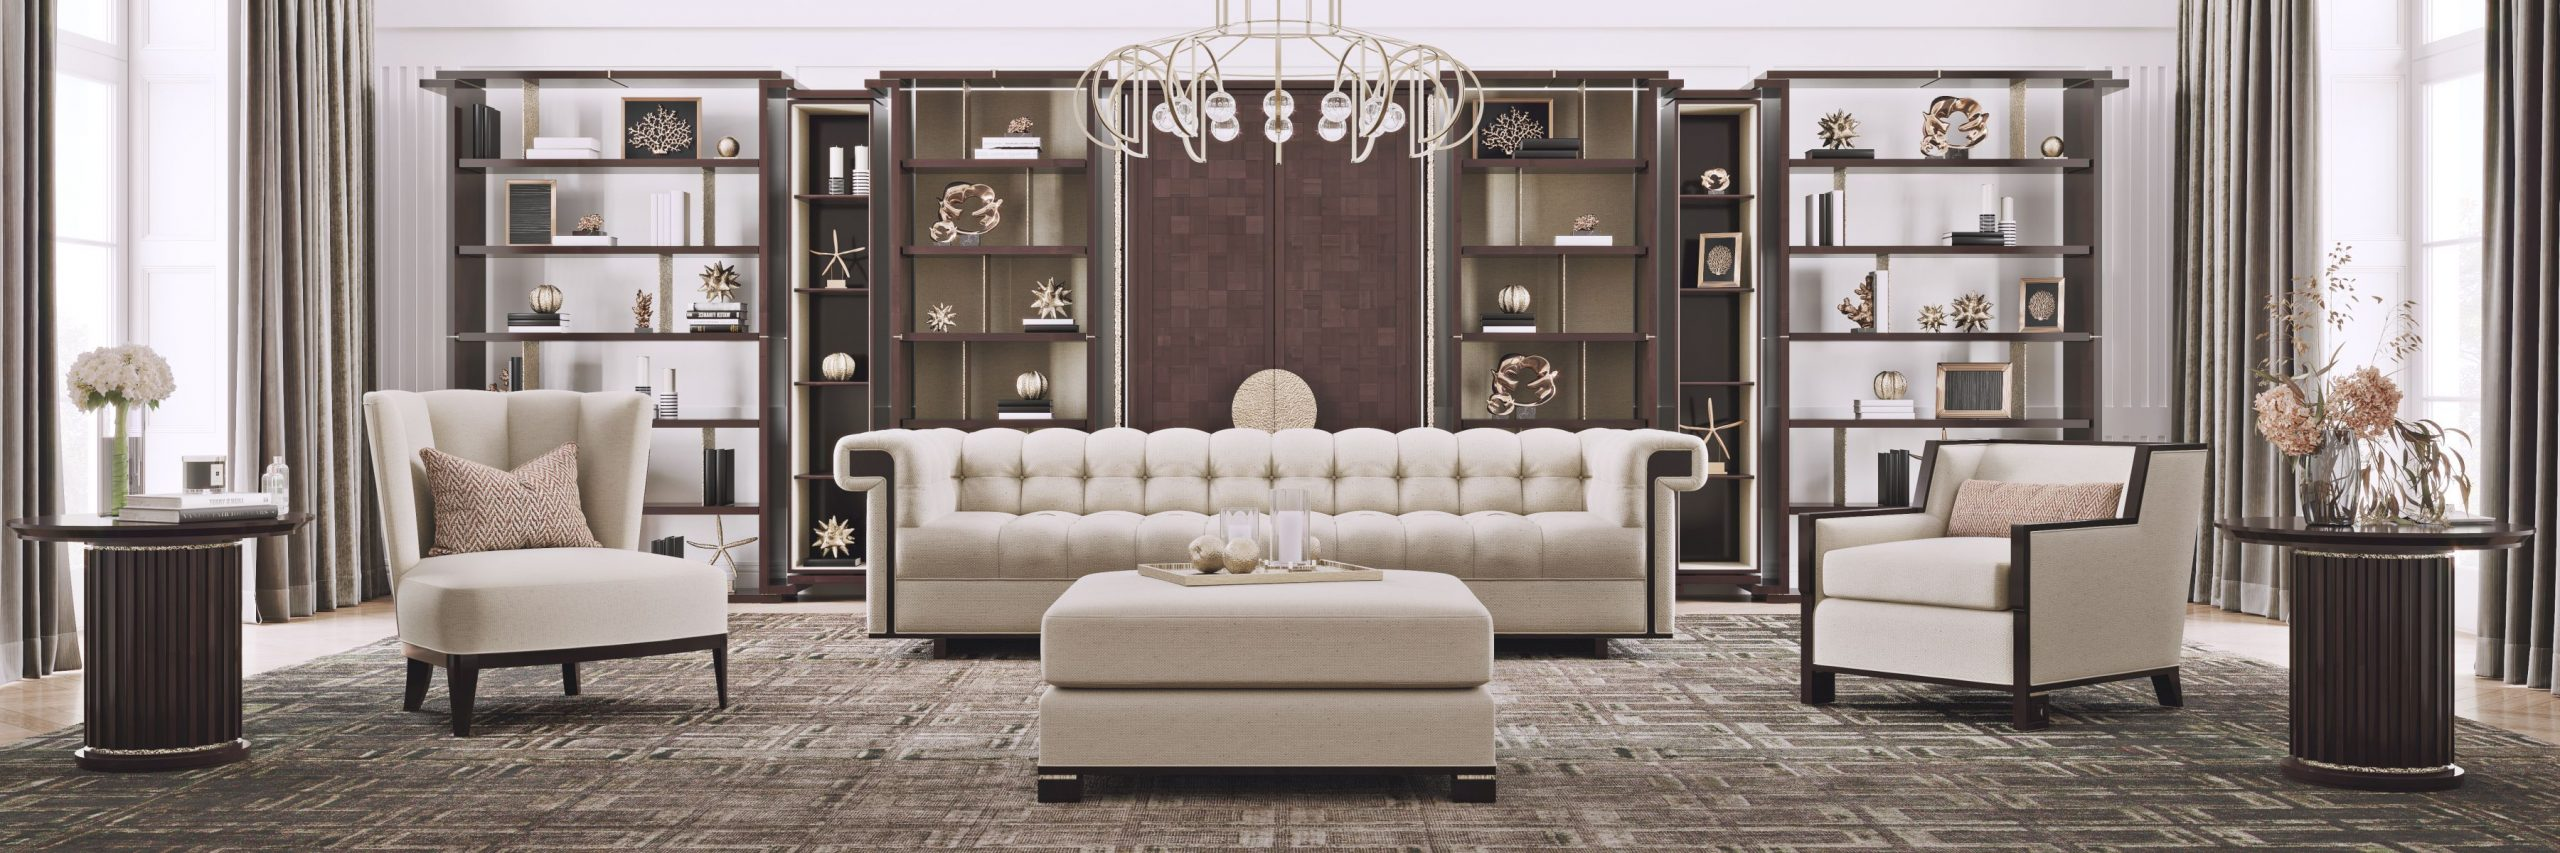 Mobilier Shepel - Living William Sofa